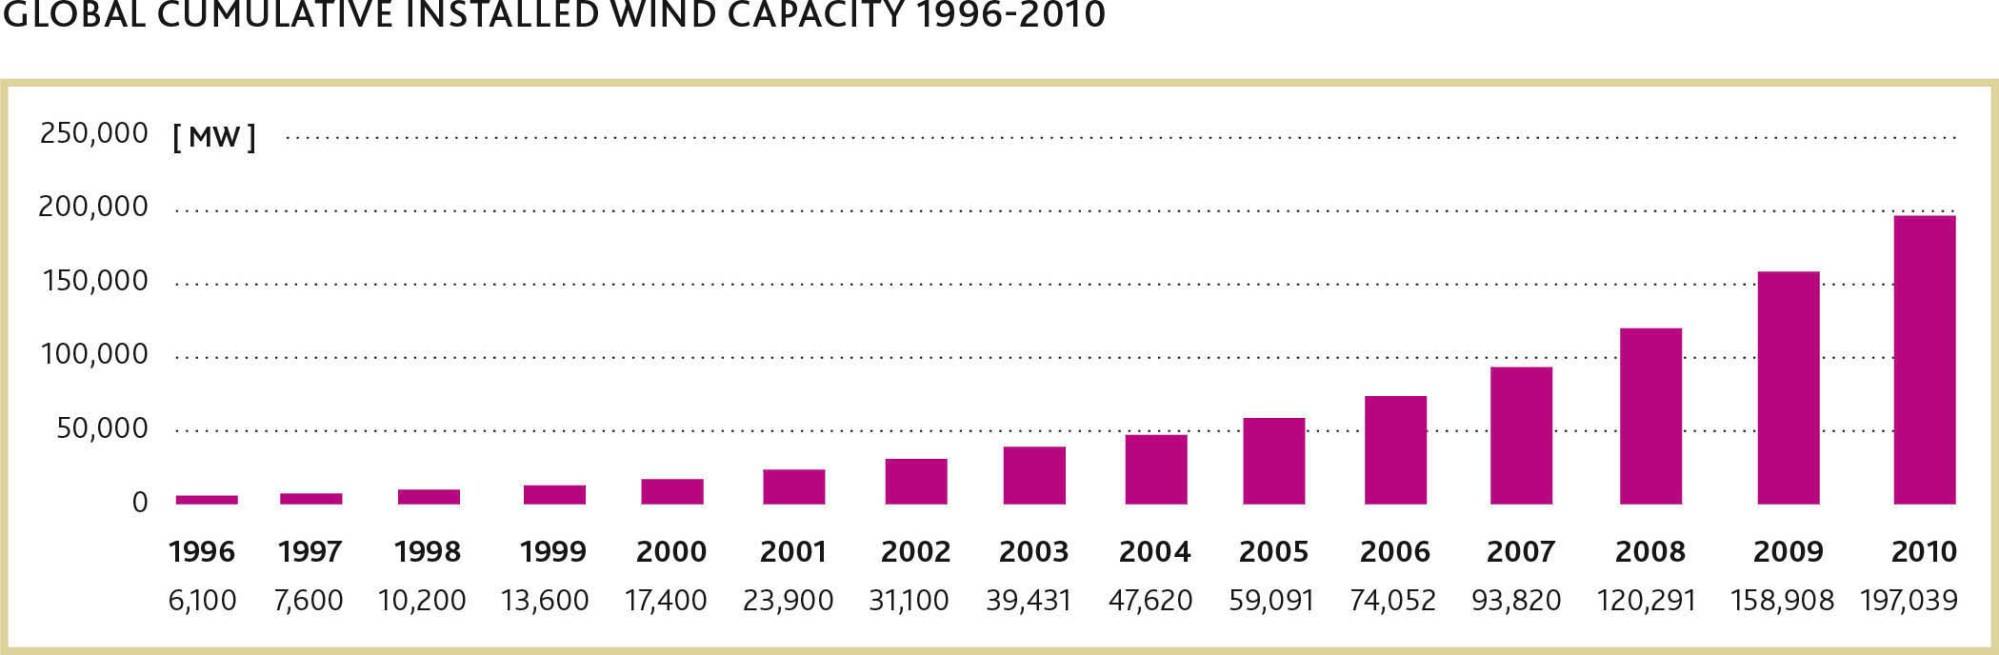 hight resolution of  global cumulative installed wind capacity 1996 2010